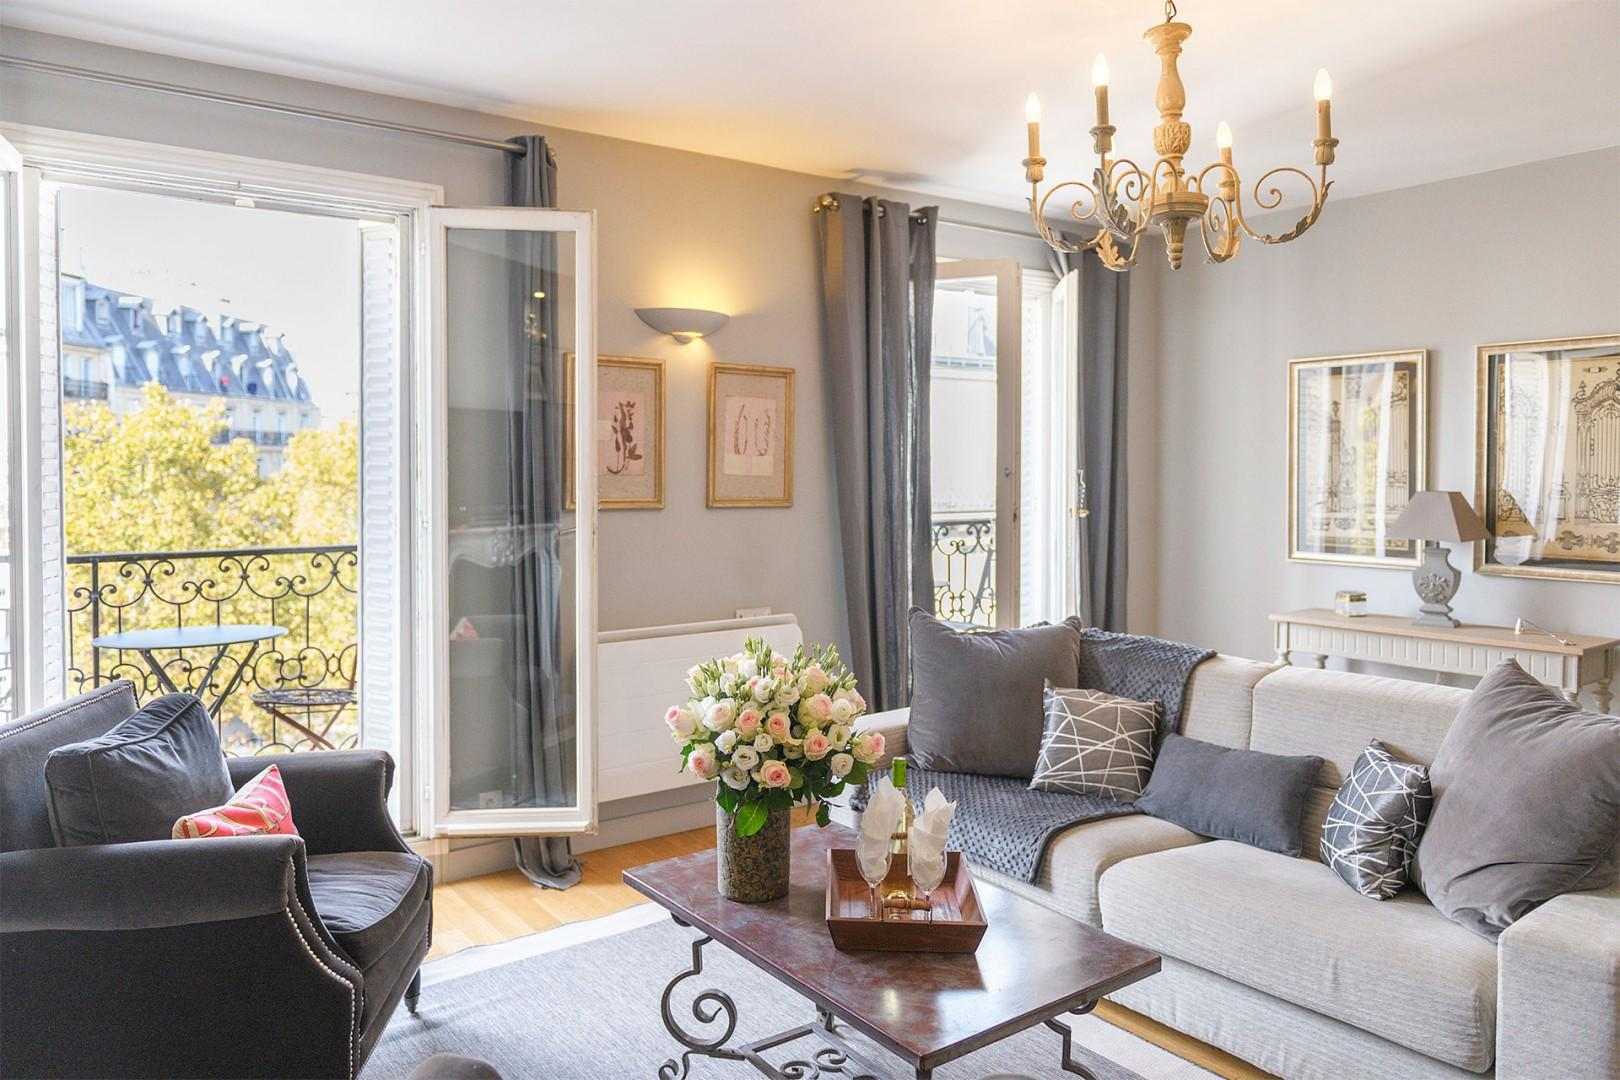 The spacious living room is perfect for celebrating your Paris vacation in comfort.